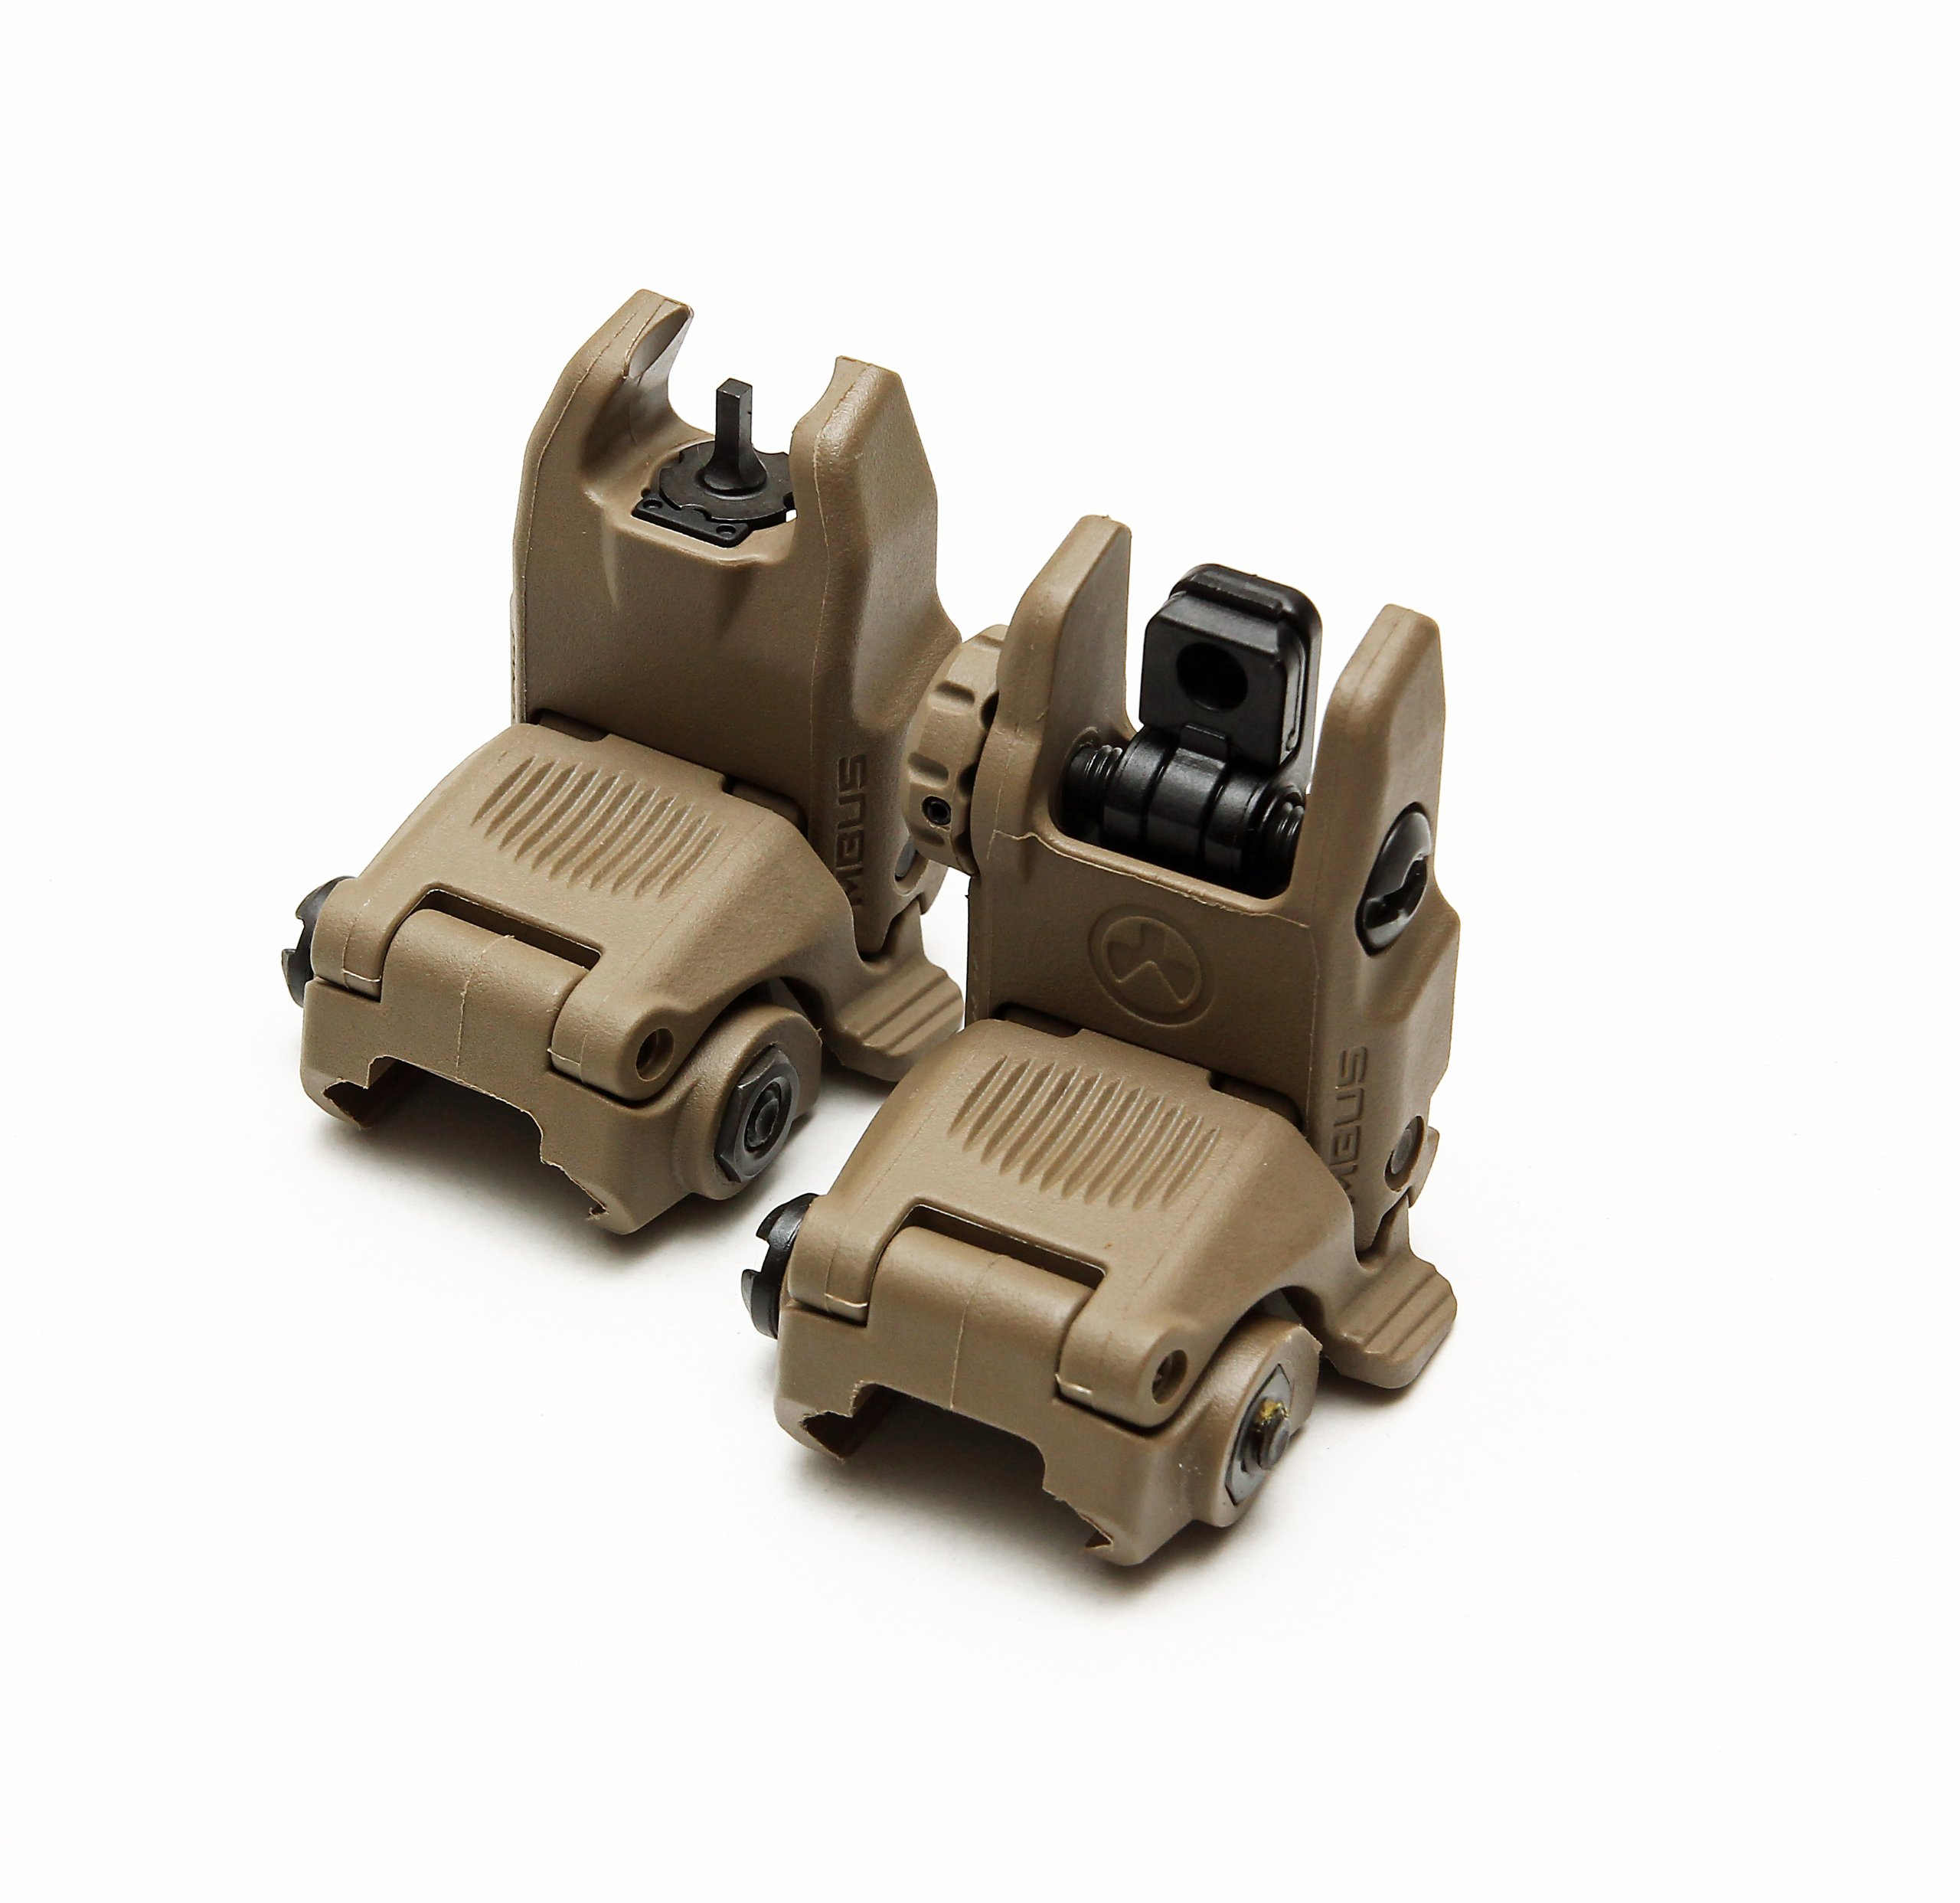 Magpul MBUS Front & Rear Flip Up Backup Sight GEN 2-247-248 - Flat Dark Earth